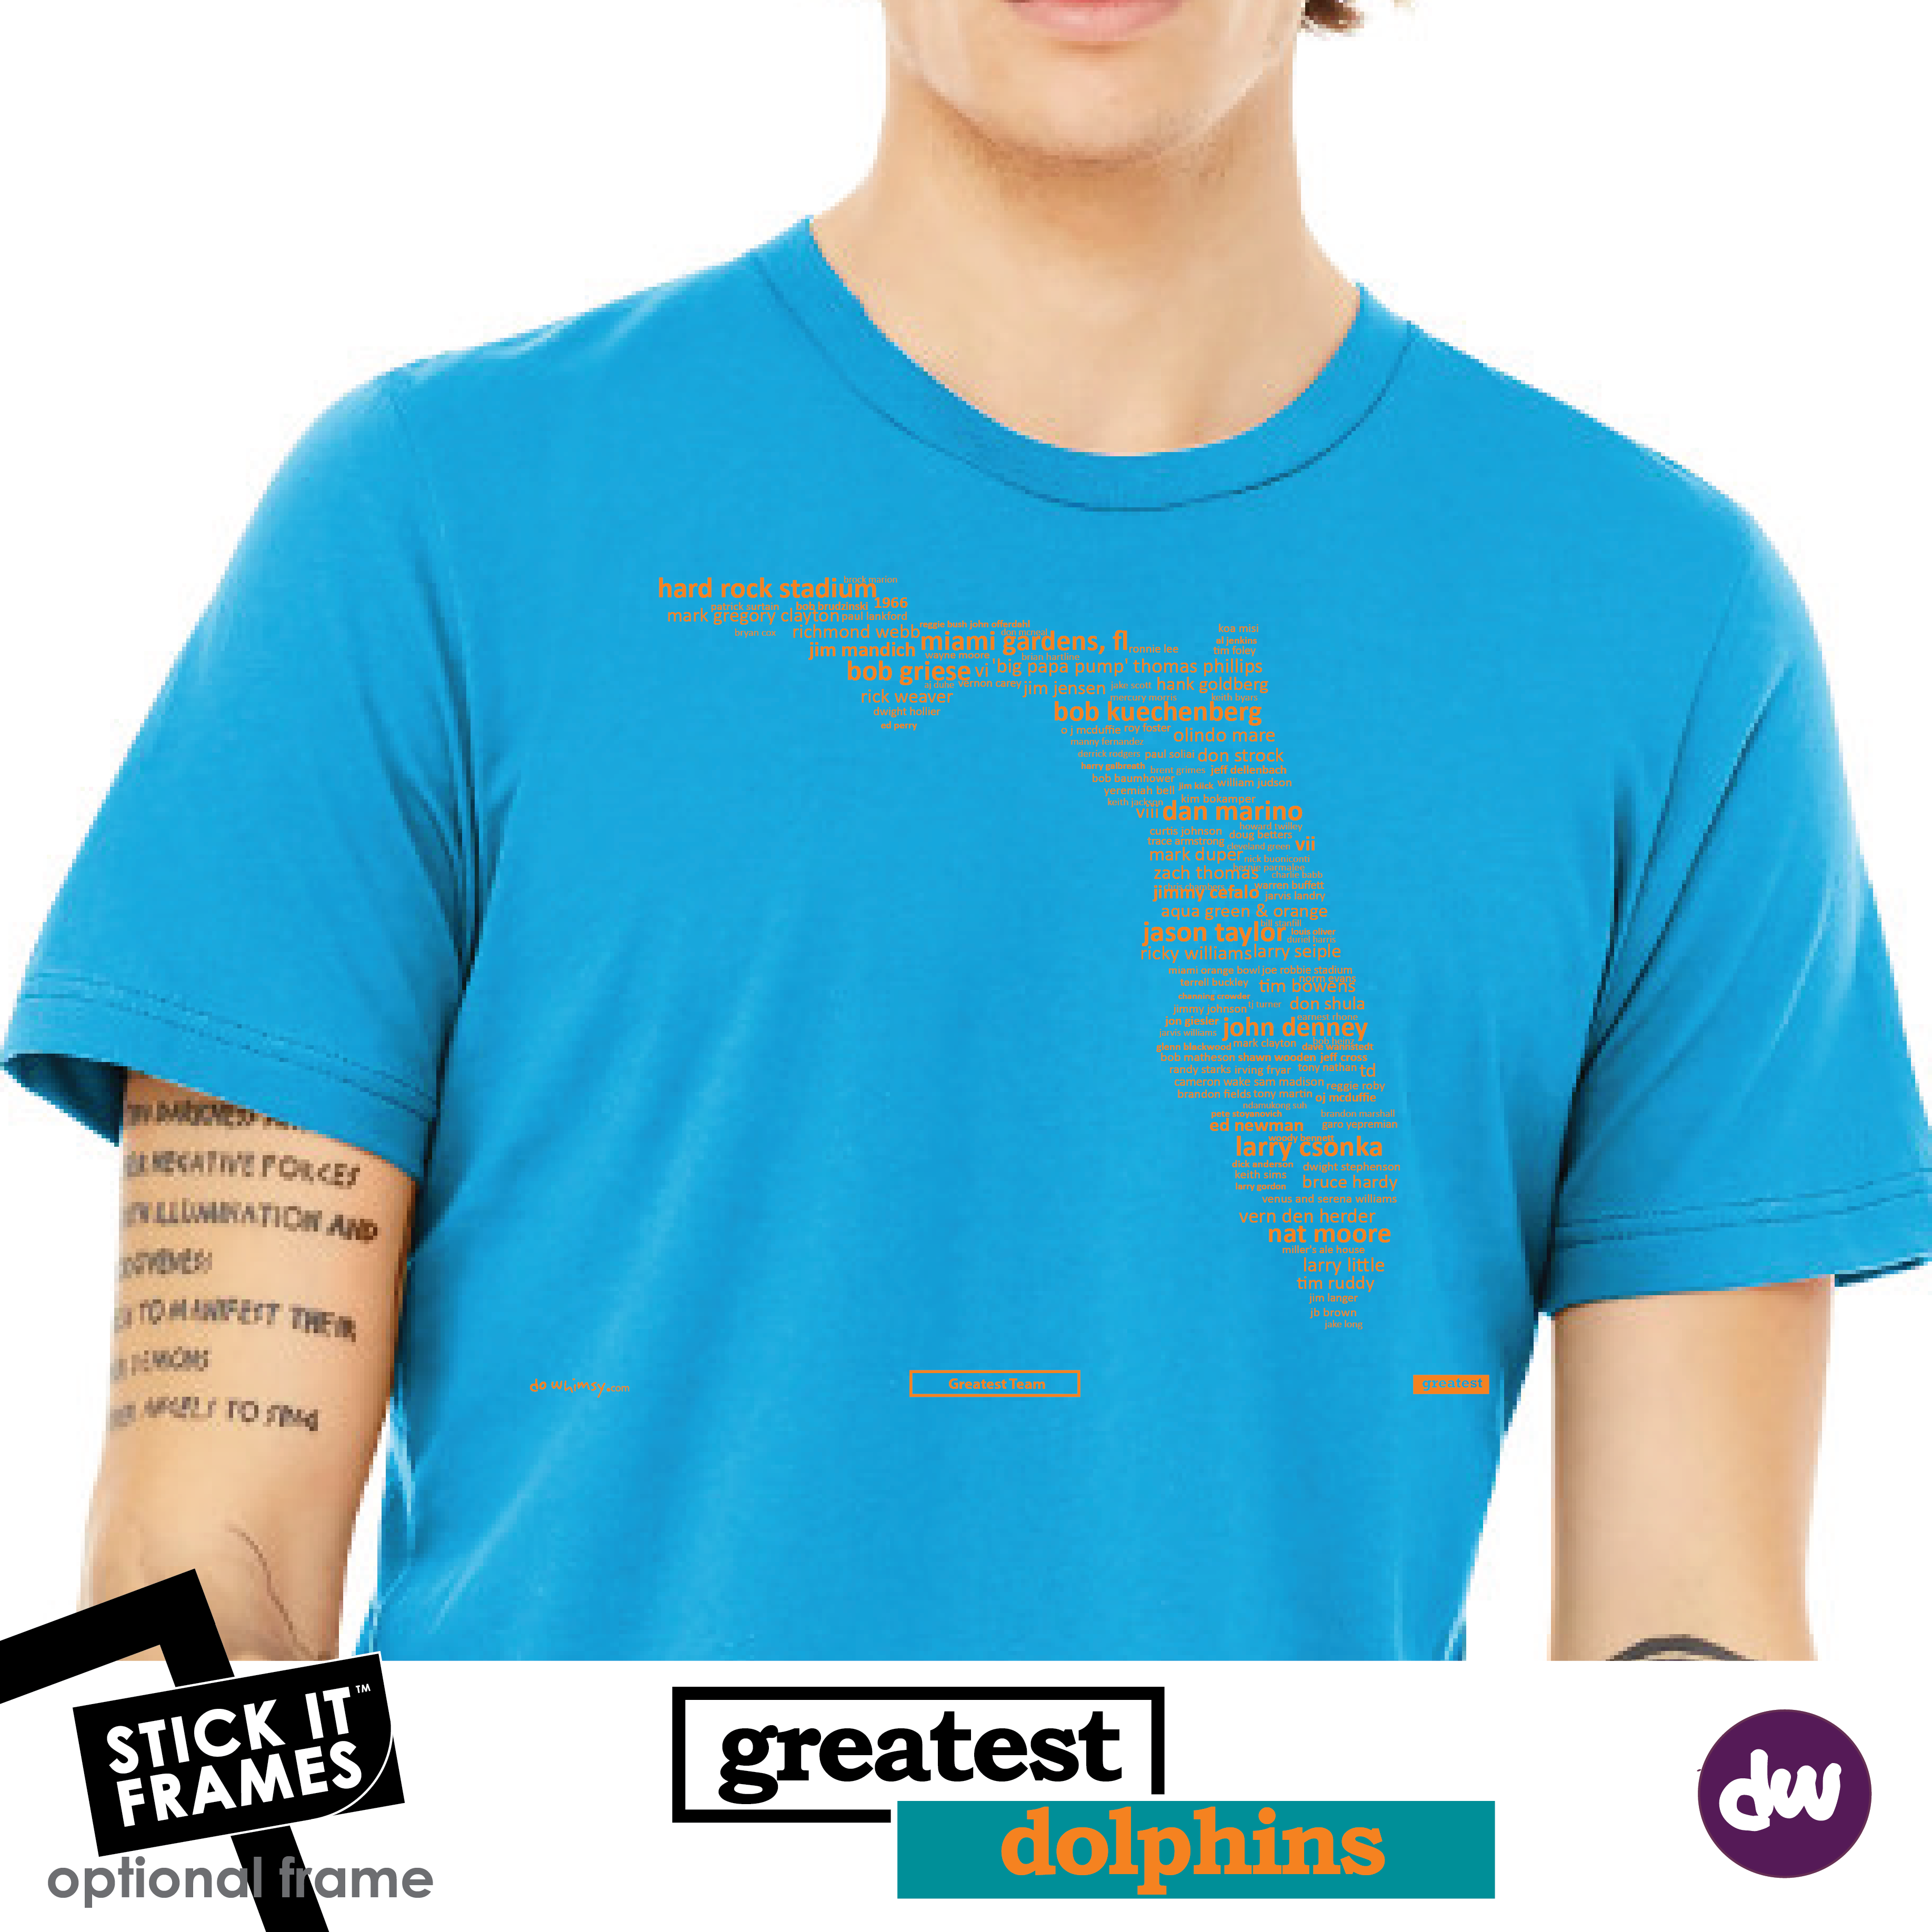 Greatest Florida (Dolphins) - All Products (Shirt, Art, Frames (R))